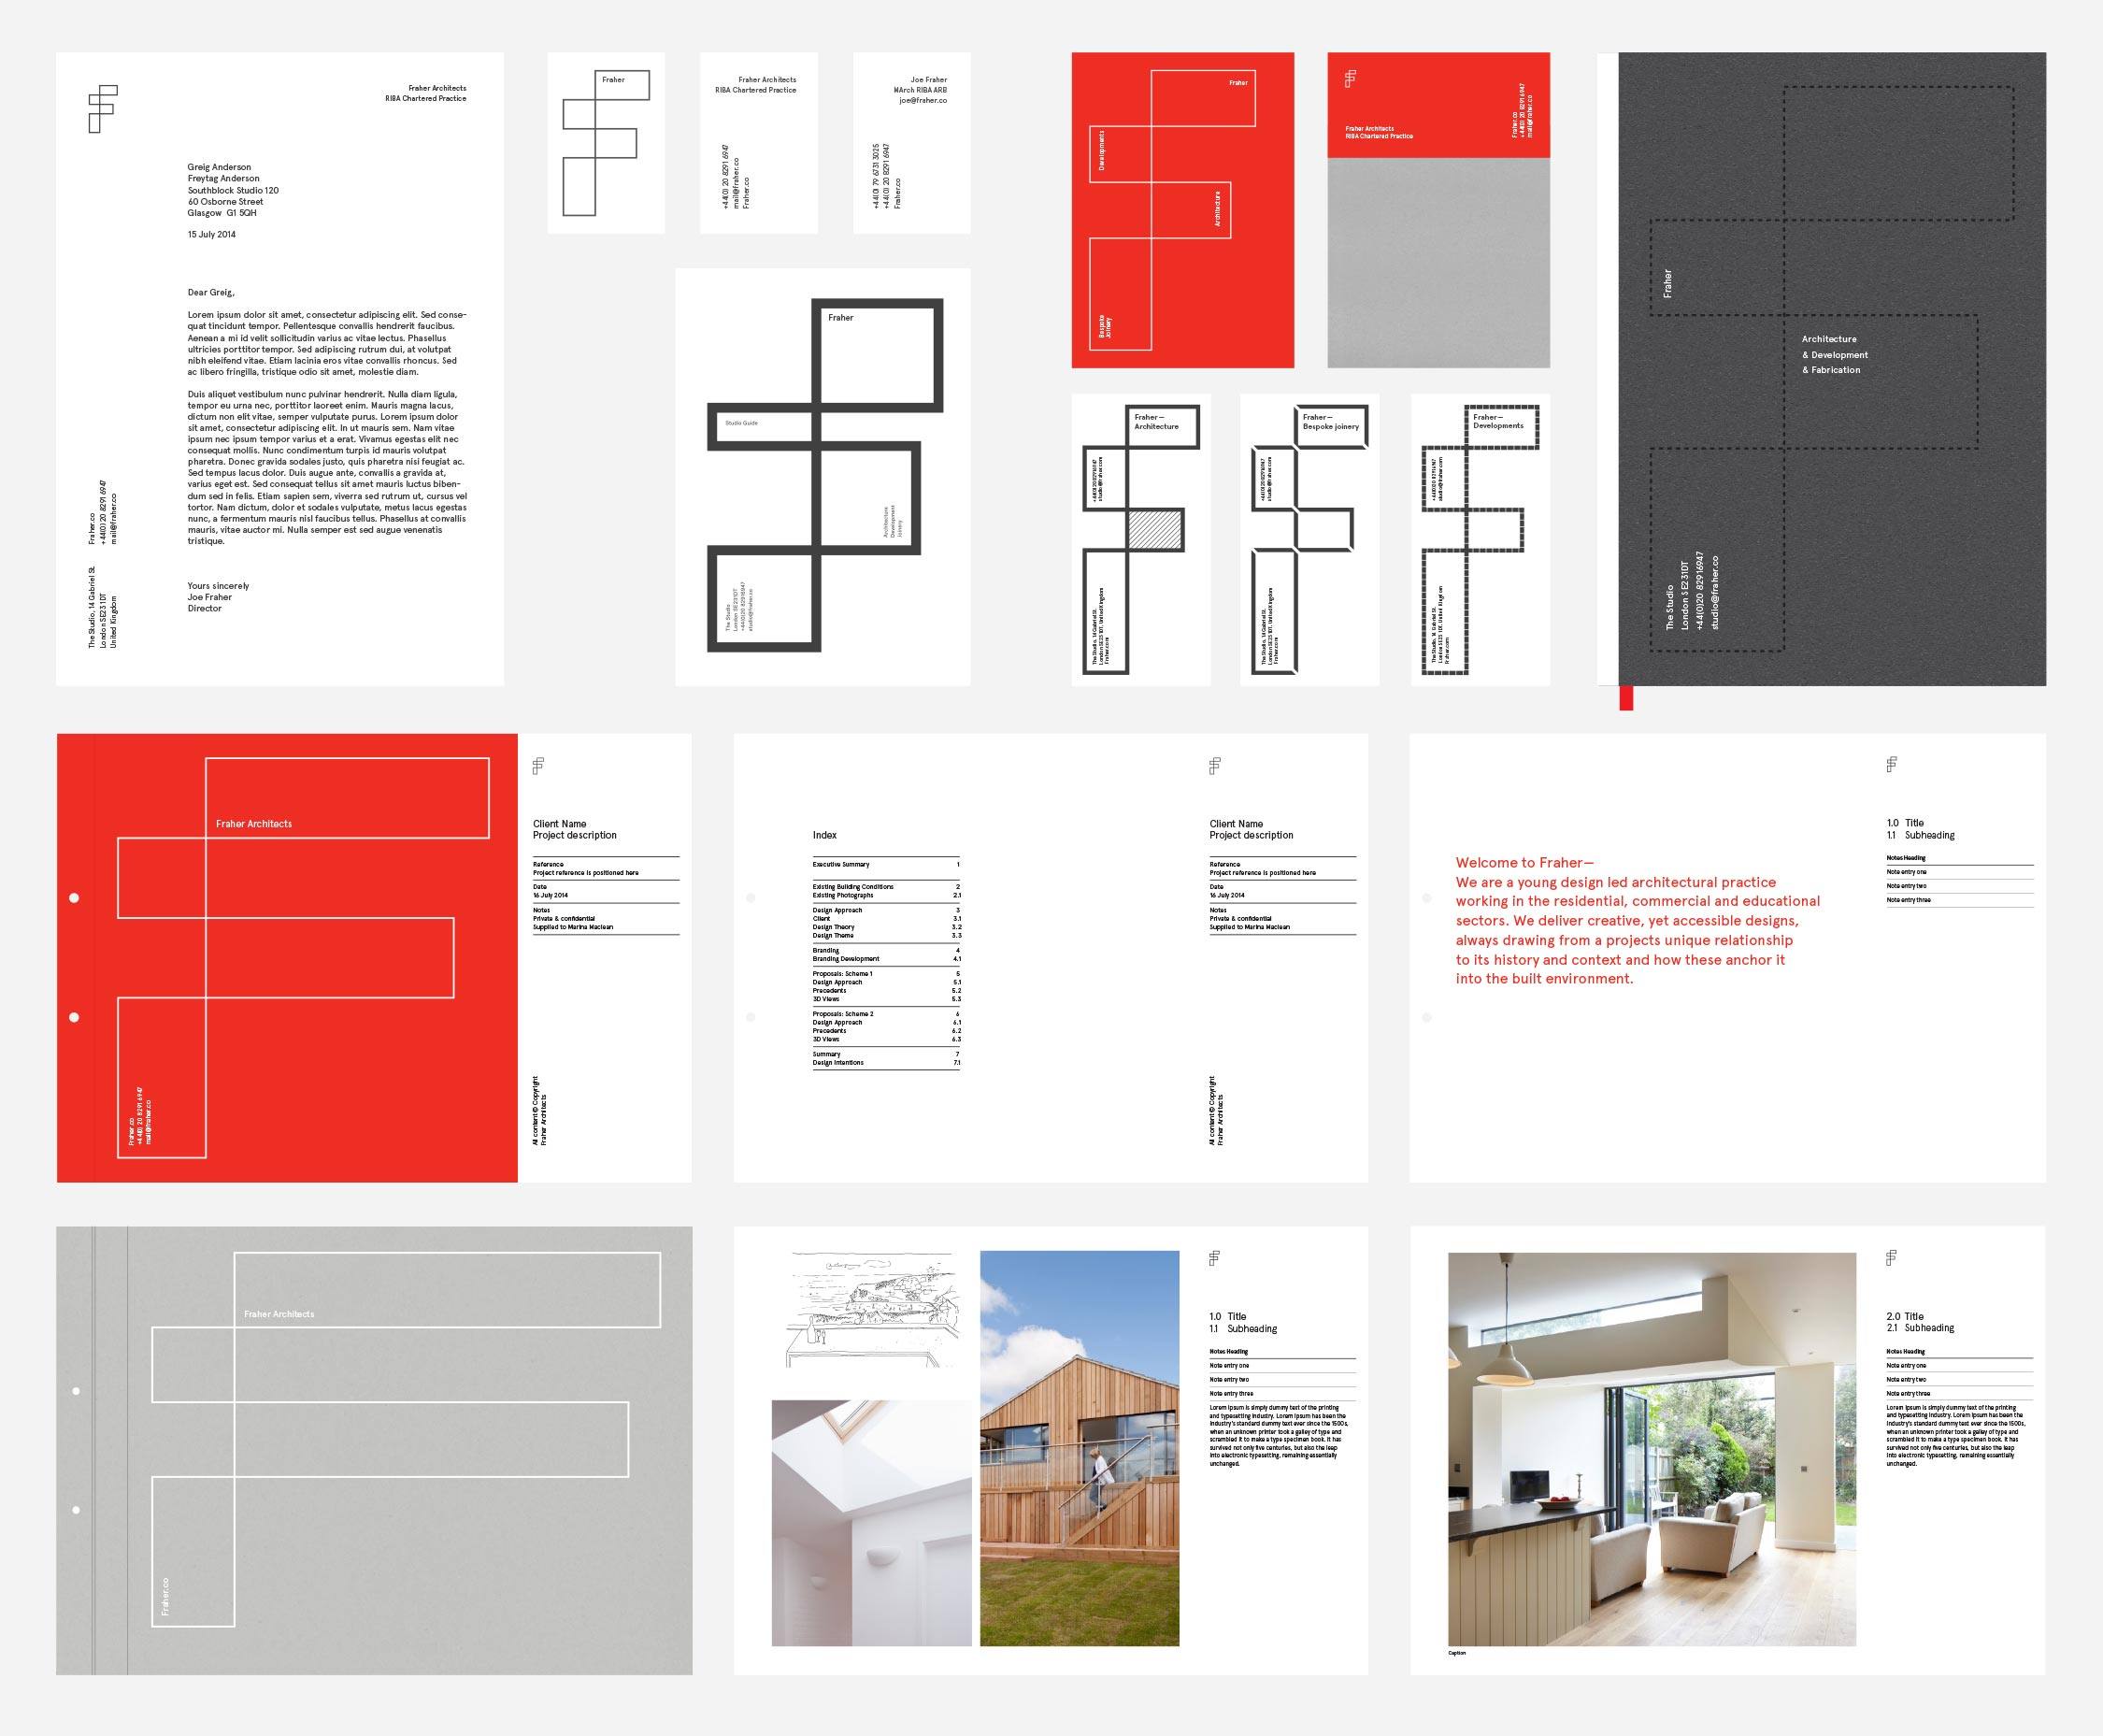 Fraher architects / Freytag Anderson (1)